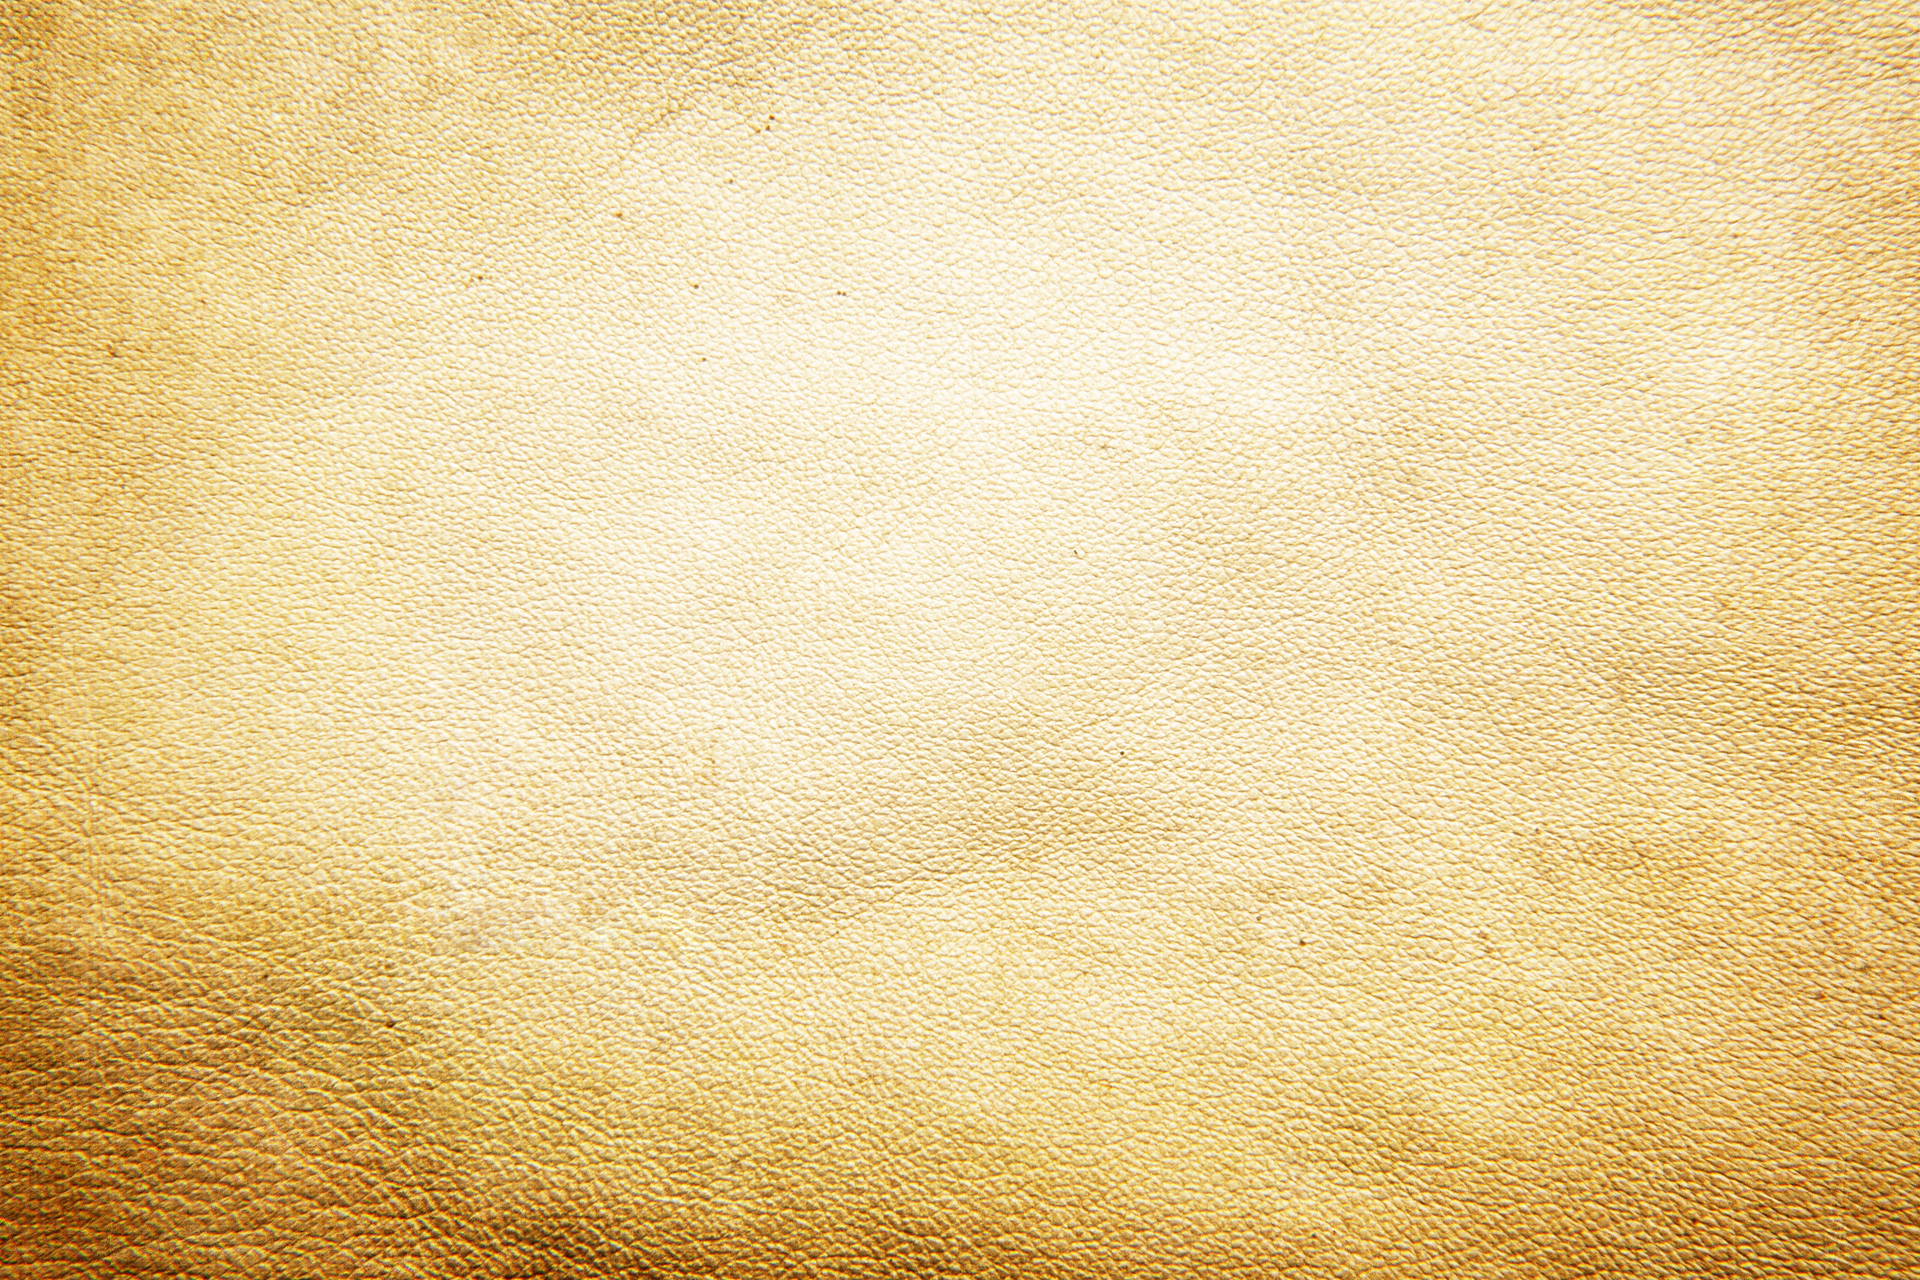 Hd Texture Backgrounds  WallpaperSafari